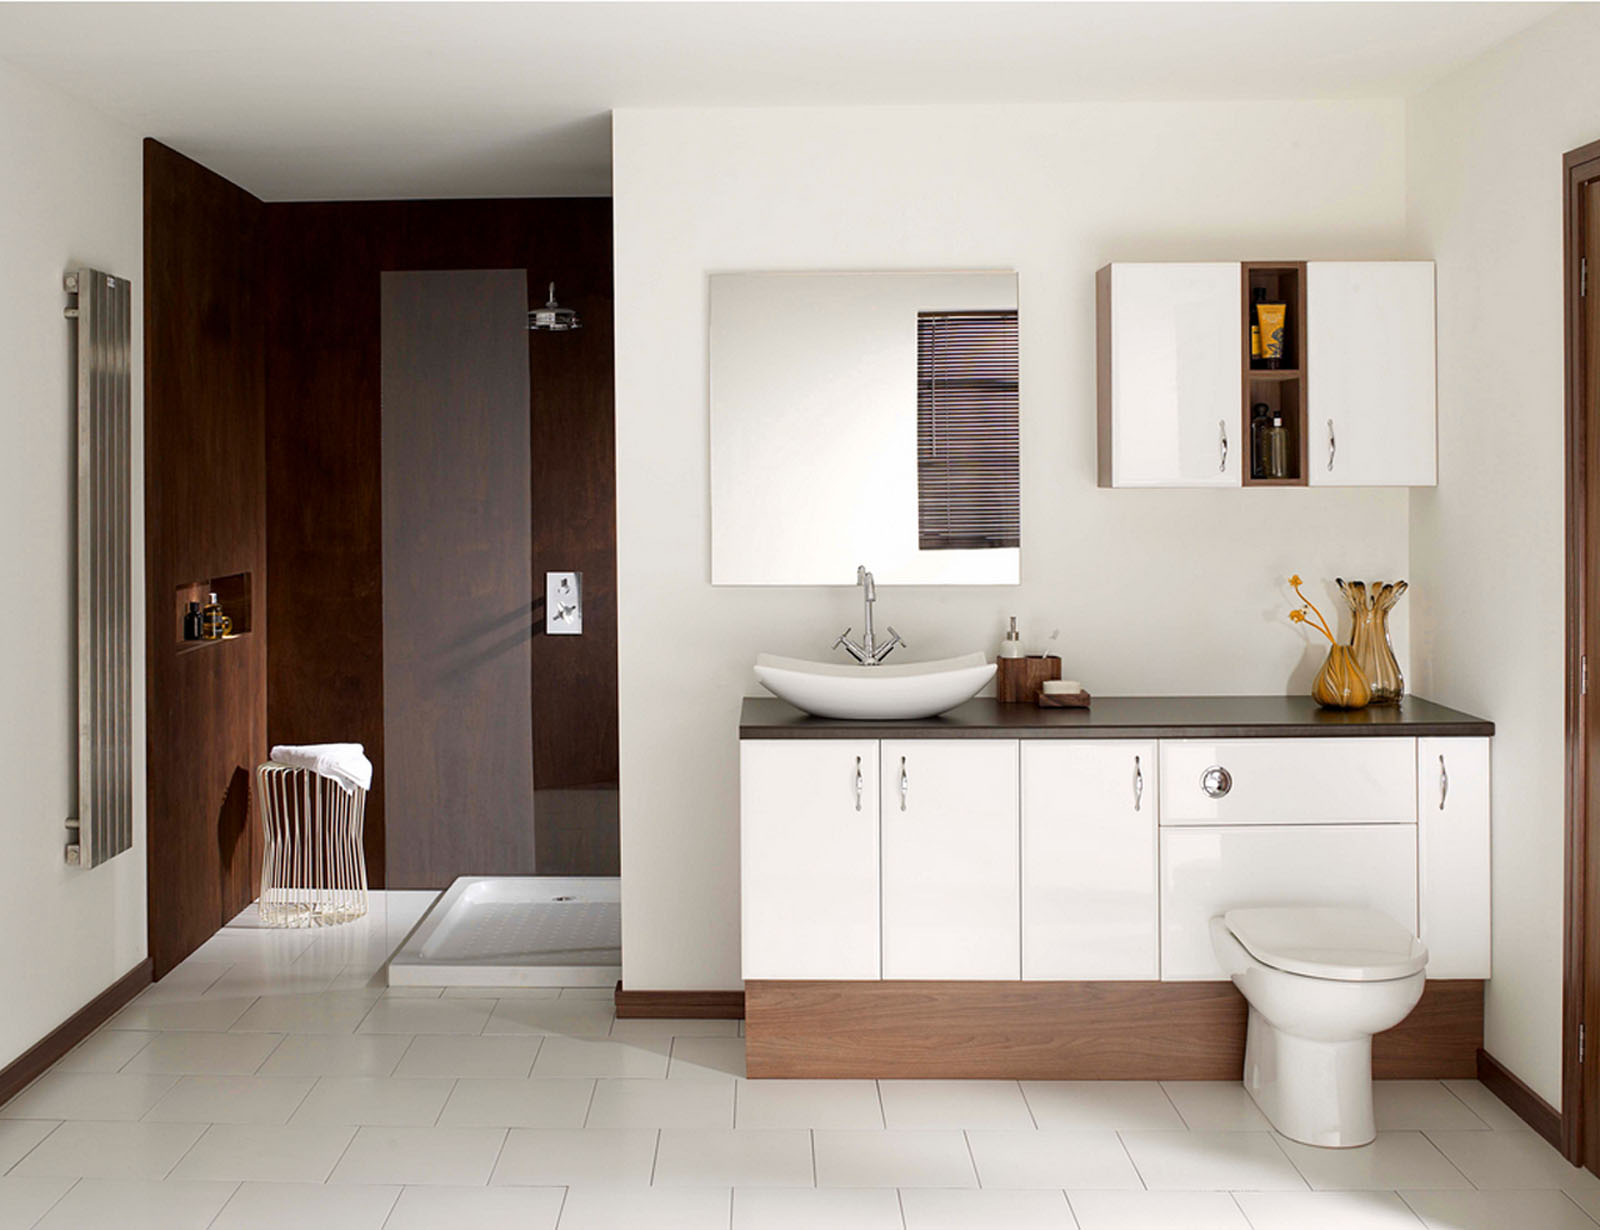 Vanity Area with Perfect Storage System Completed with above Cabinet and Mirrored Cabinet